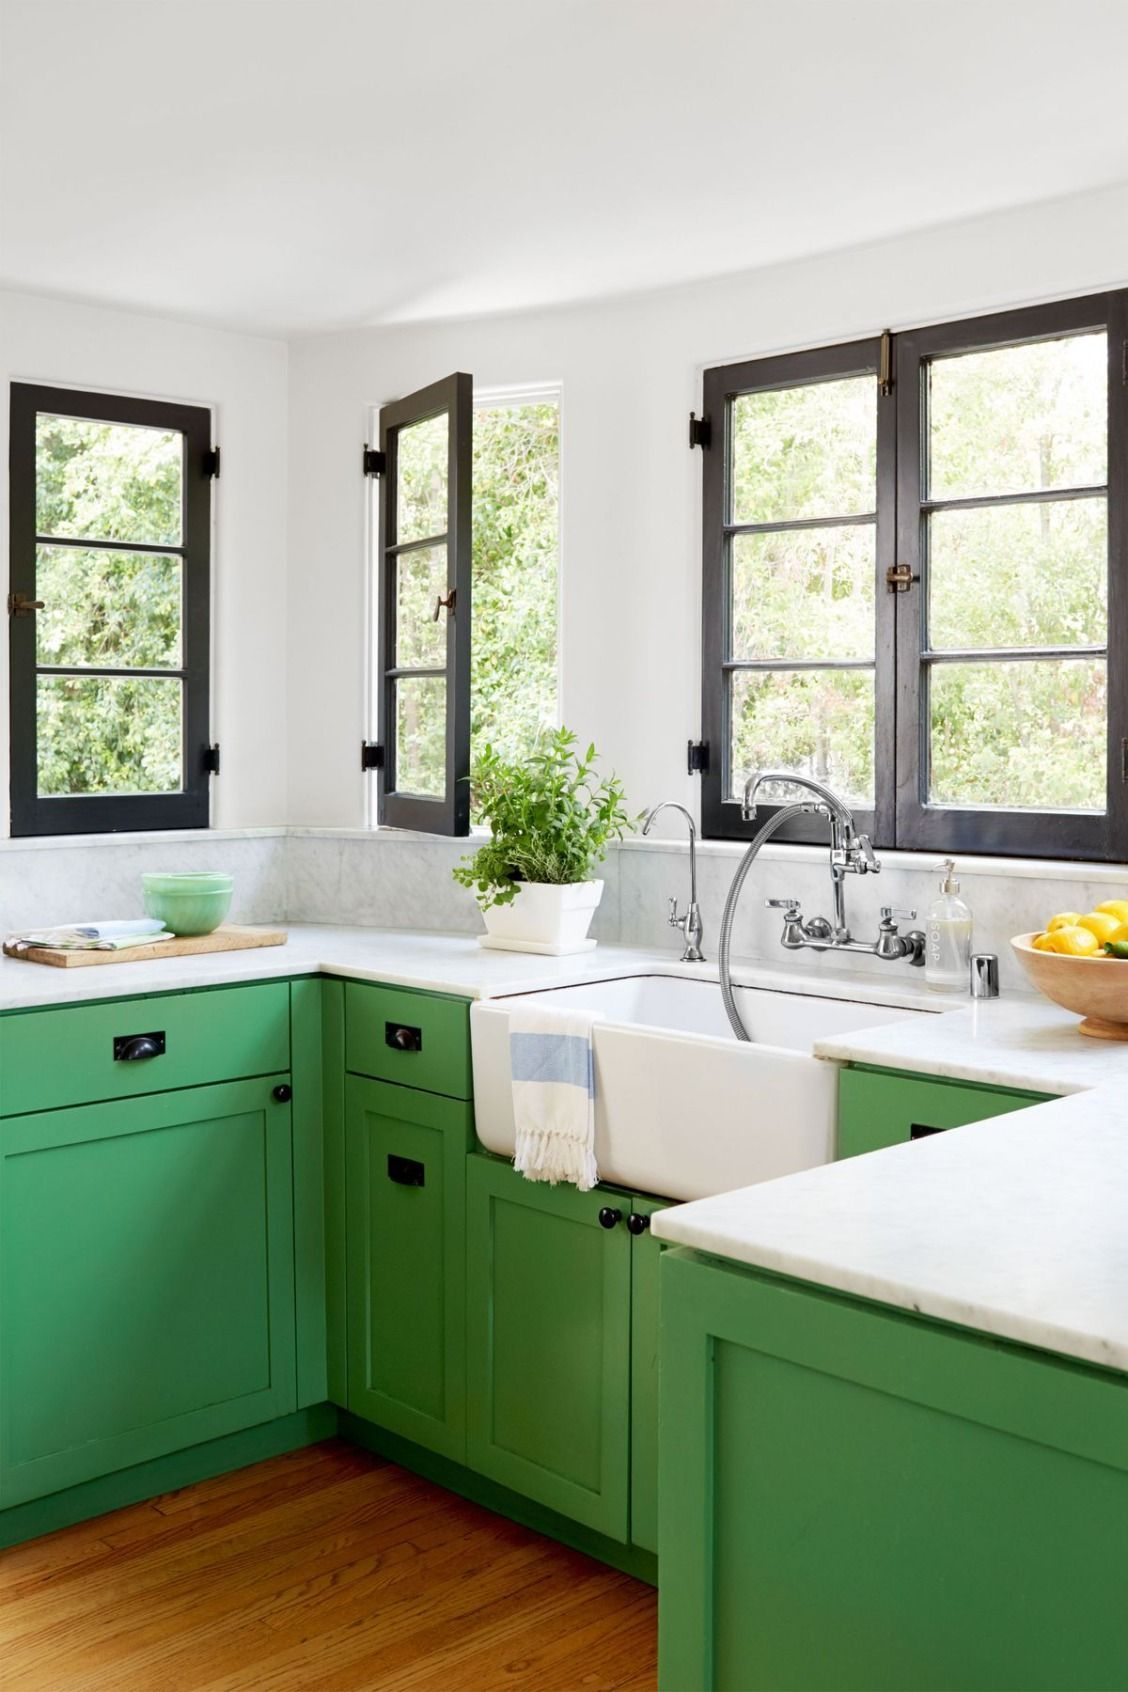 Low window behind kitchen sink  hereus the only home renovation list youull need  home remodeling